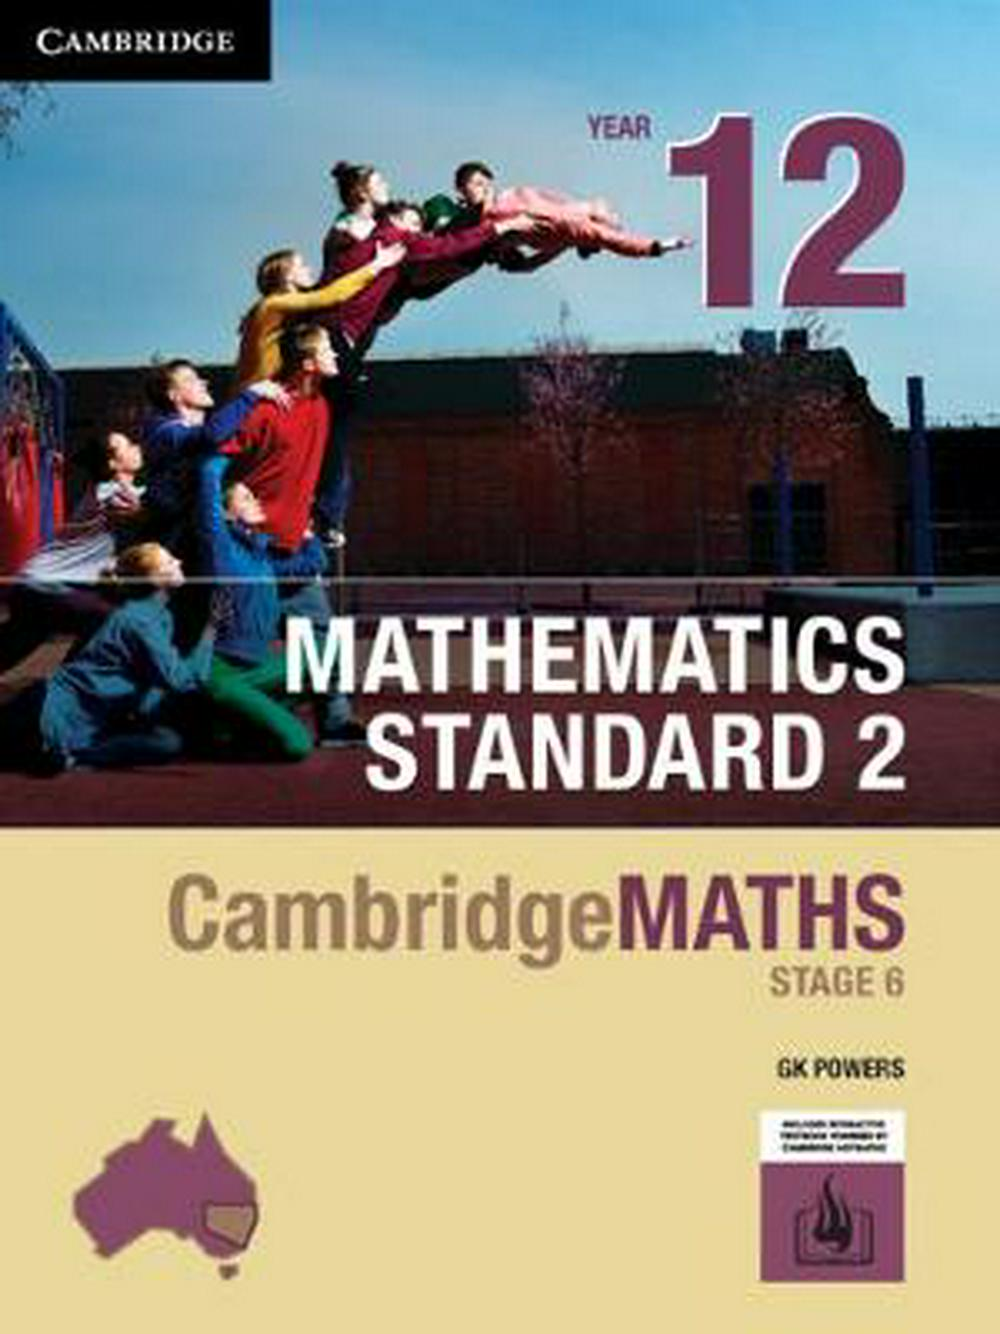 Cambridge Maths Stage 6 NSW Standard TWO Year 12 Print Bundle (Textbook and HOTmaths) by Gregory Powers, ISBN: 9781108448079